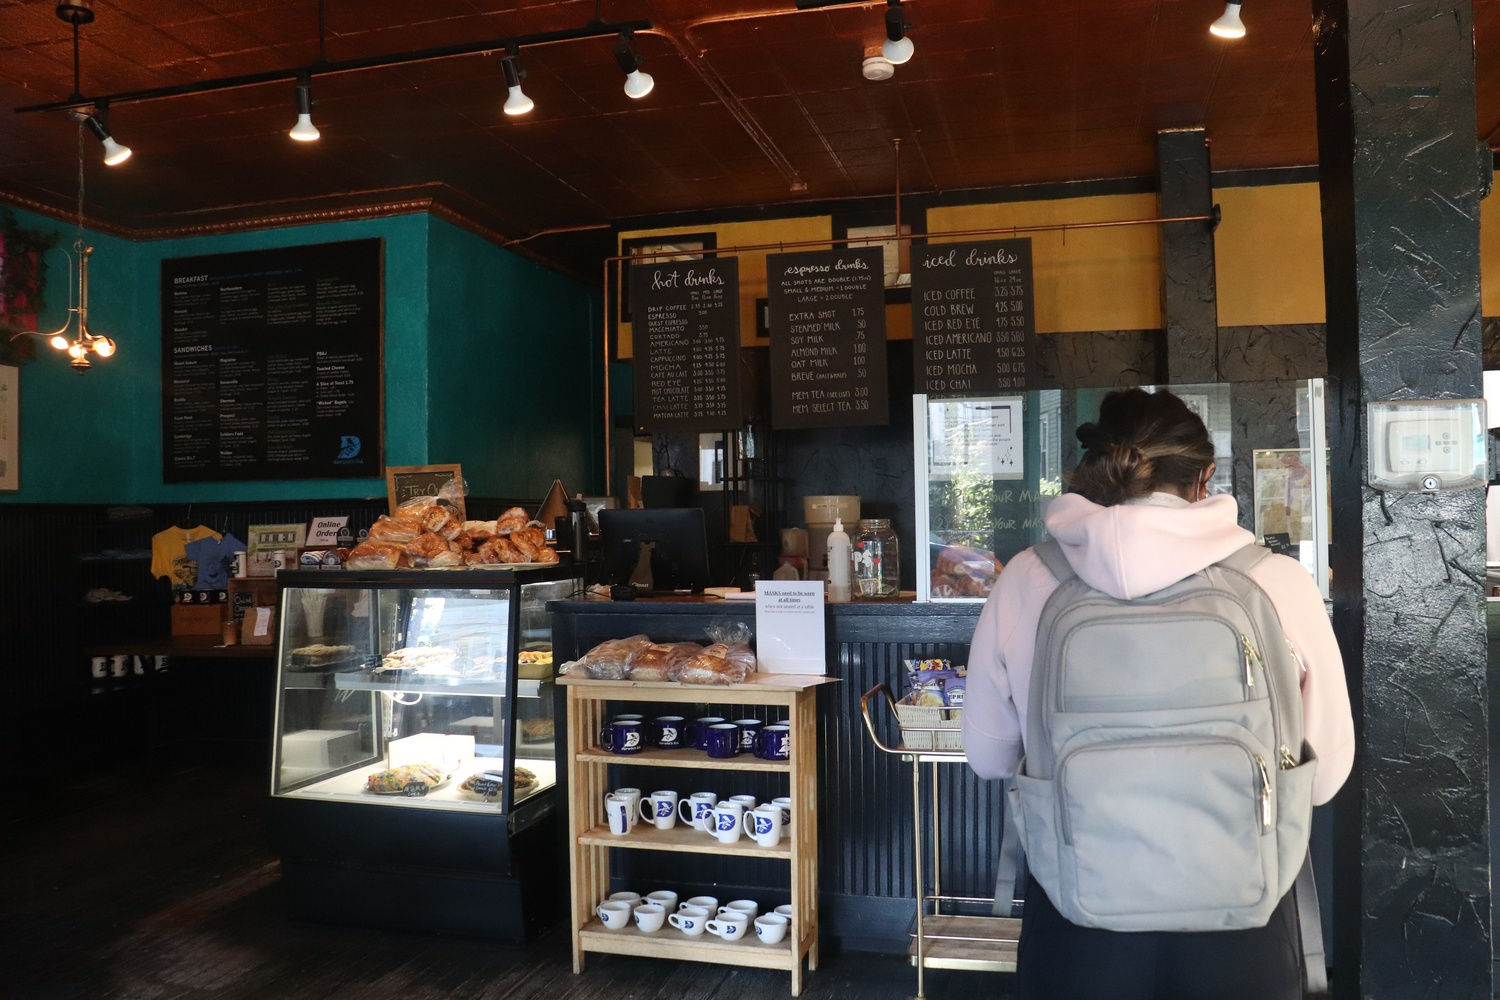 Workers at Darwin's, pictured above, and Pavement, two Harvard Square coffee shops, have recently started campaigning for unionization.